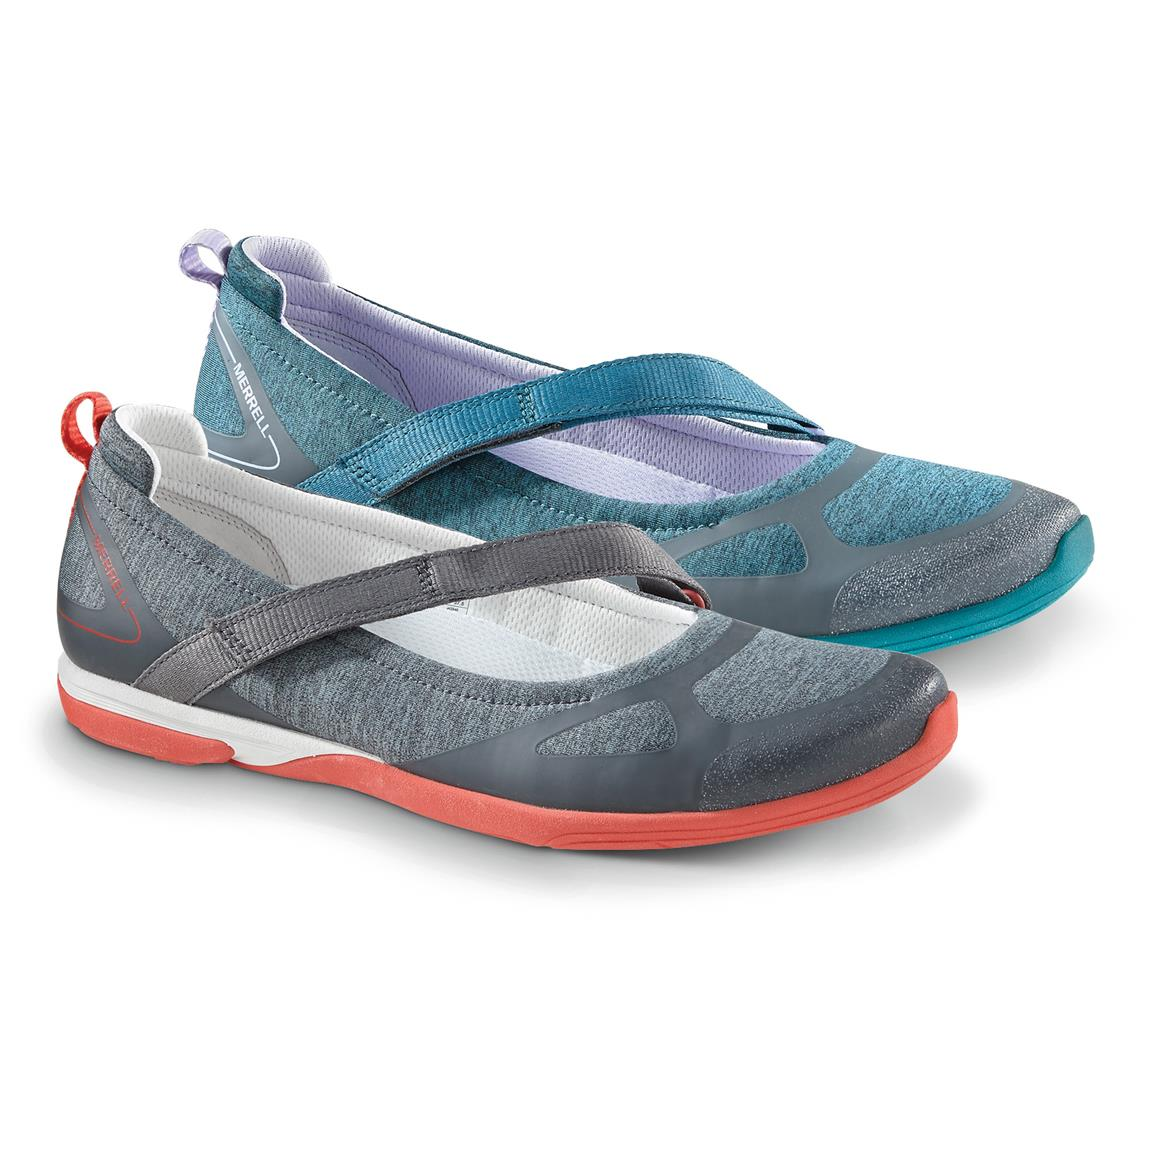 Women's Merrell Ceylon Mary Jane Shoes